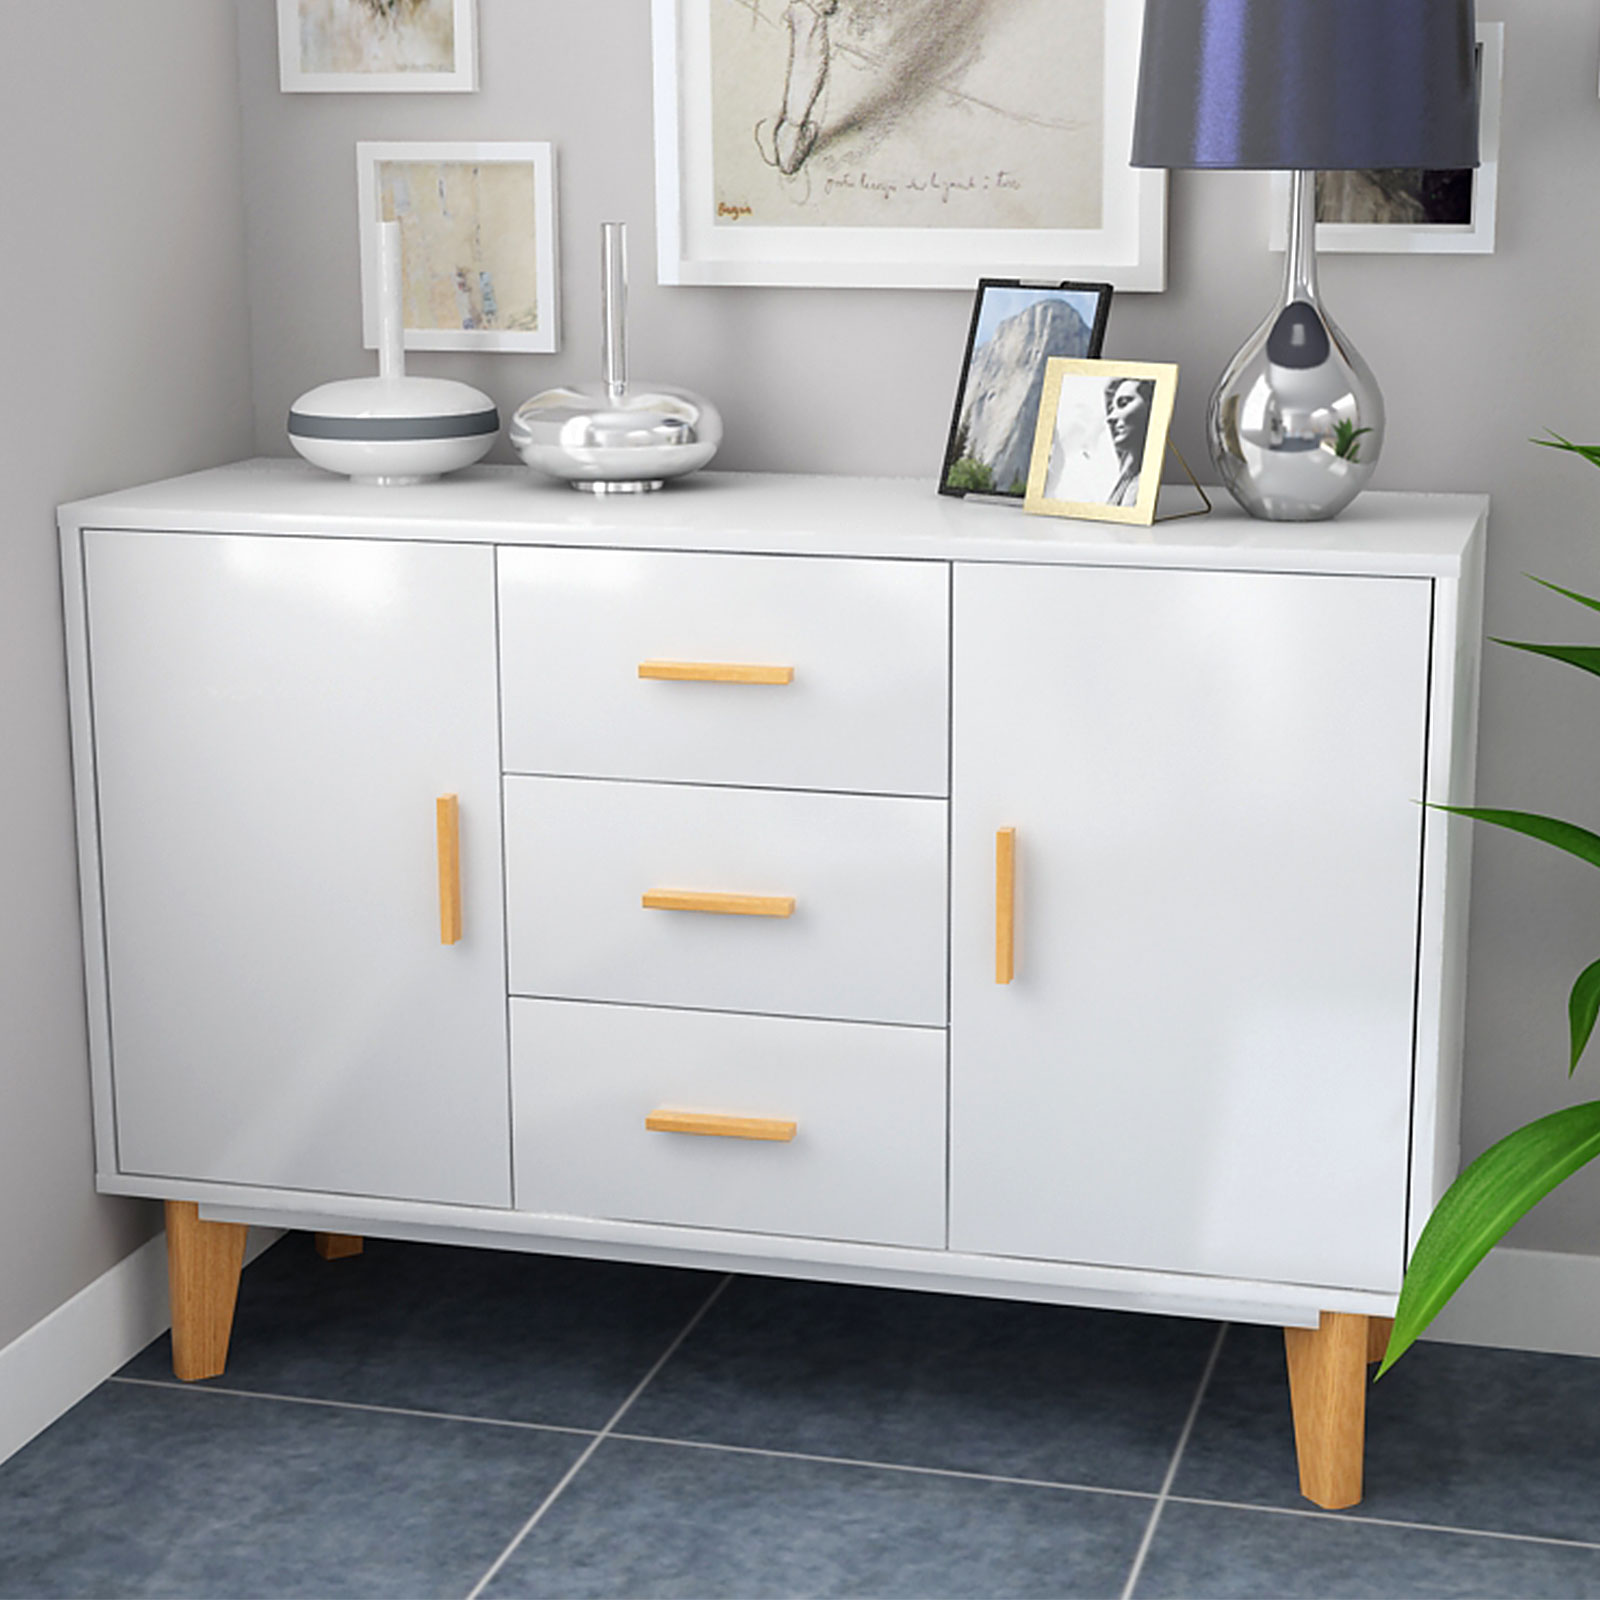 Abbey Coffee Table High Gloss White With 2 Pull Out Drawers: High Gloss Sideboard Cabinet TV Stand Unit Coffee Table